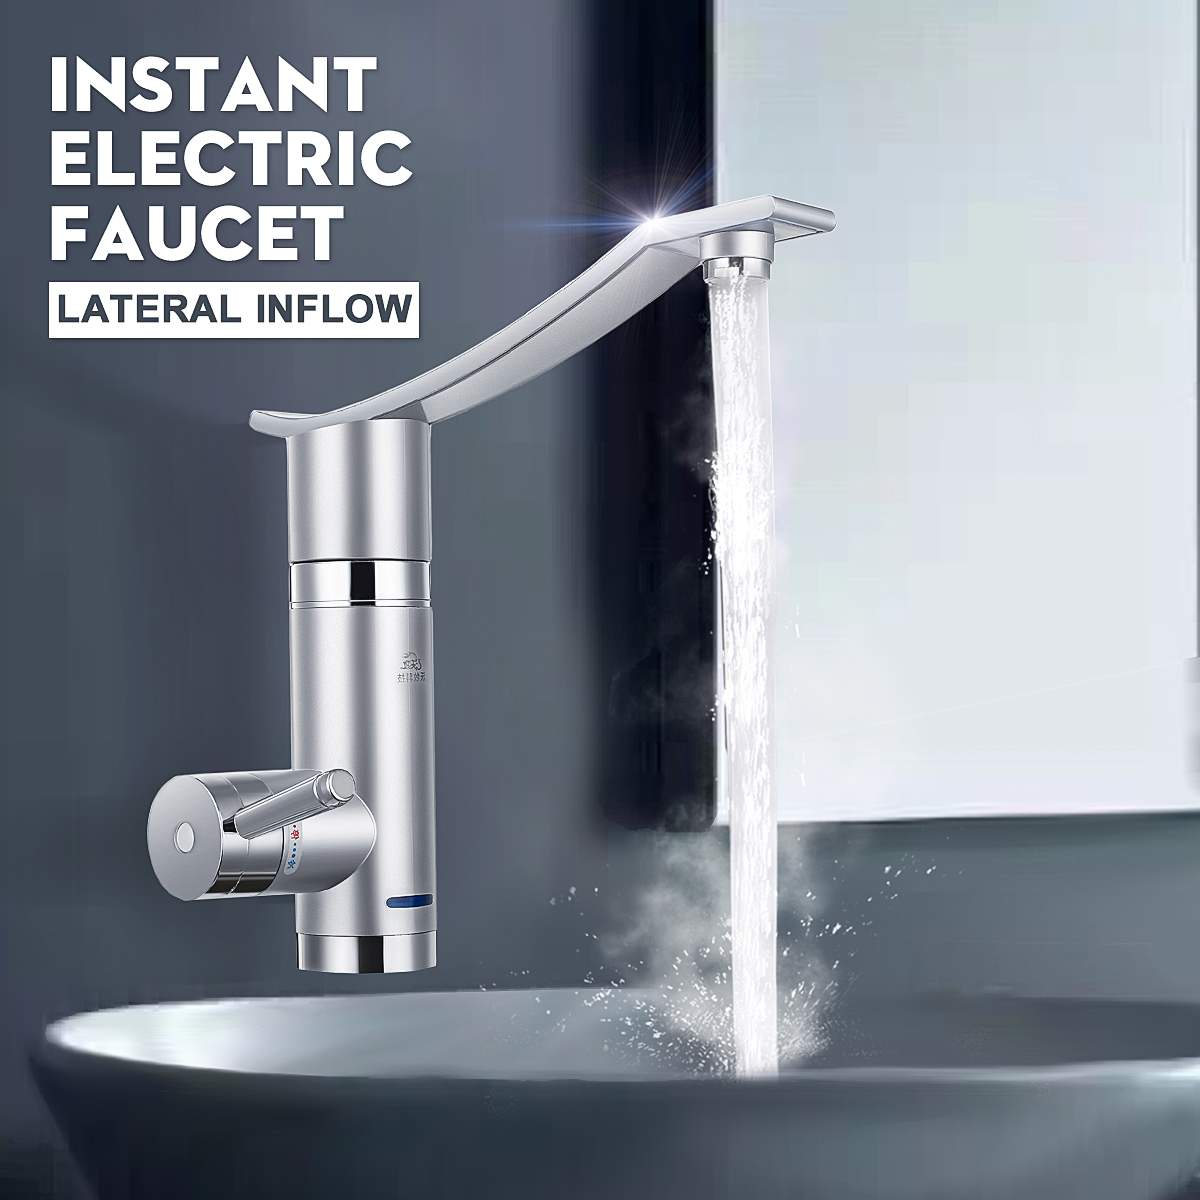 Electric Kitchen Water Heater Tap Instant Hot Water Faucet Heater Cold Heating Faucet Instantaneous Water Heater Tap 3000W 220V